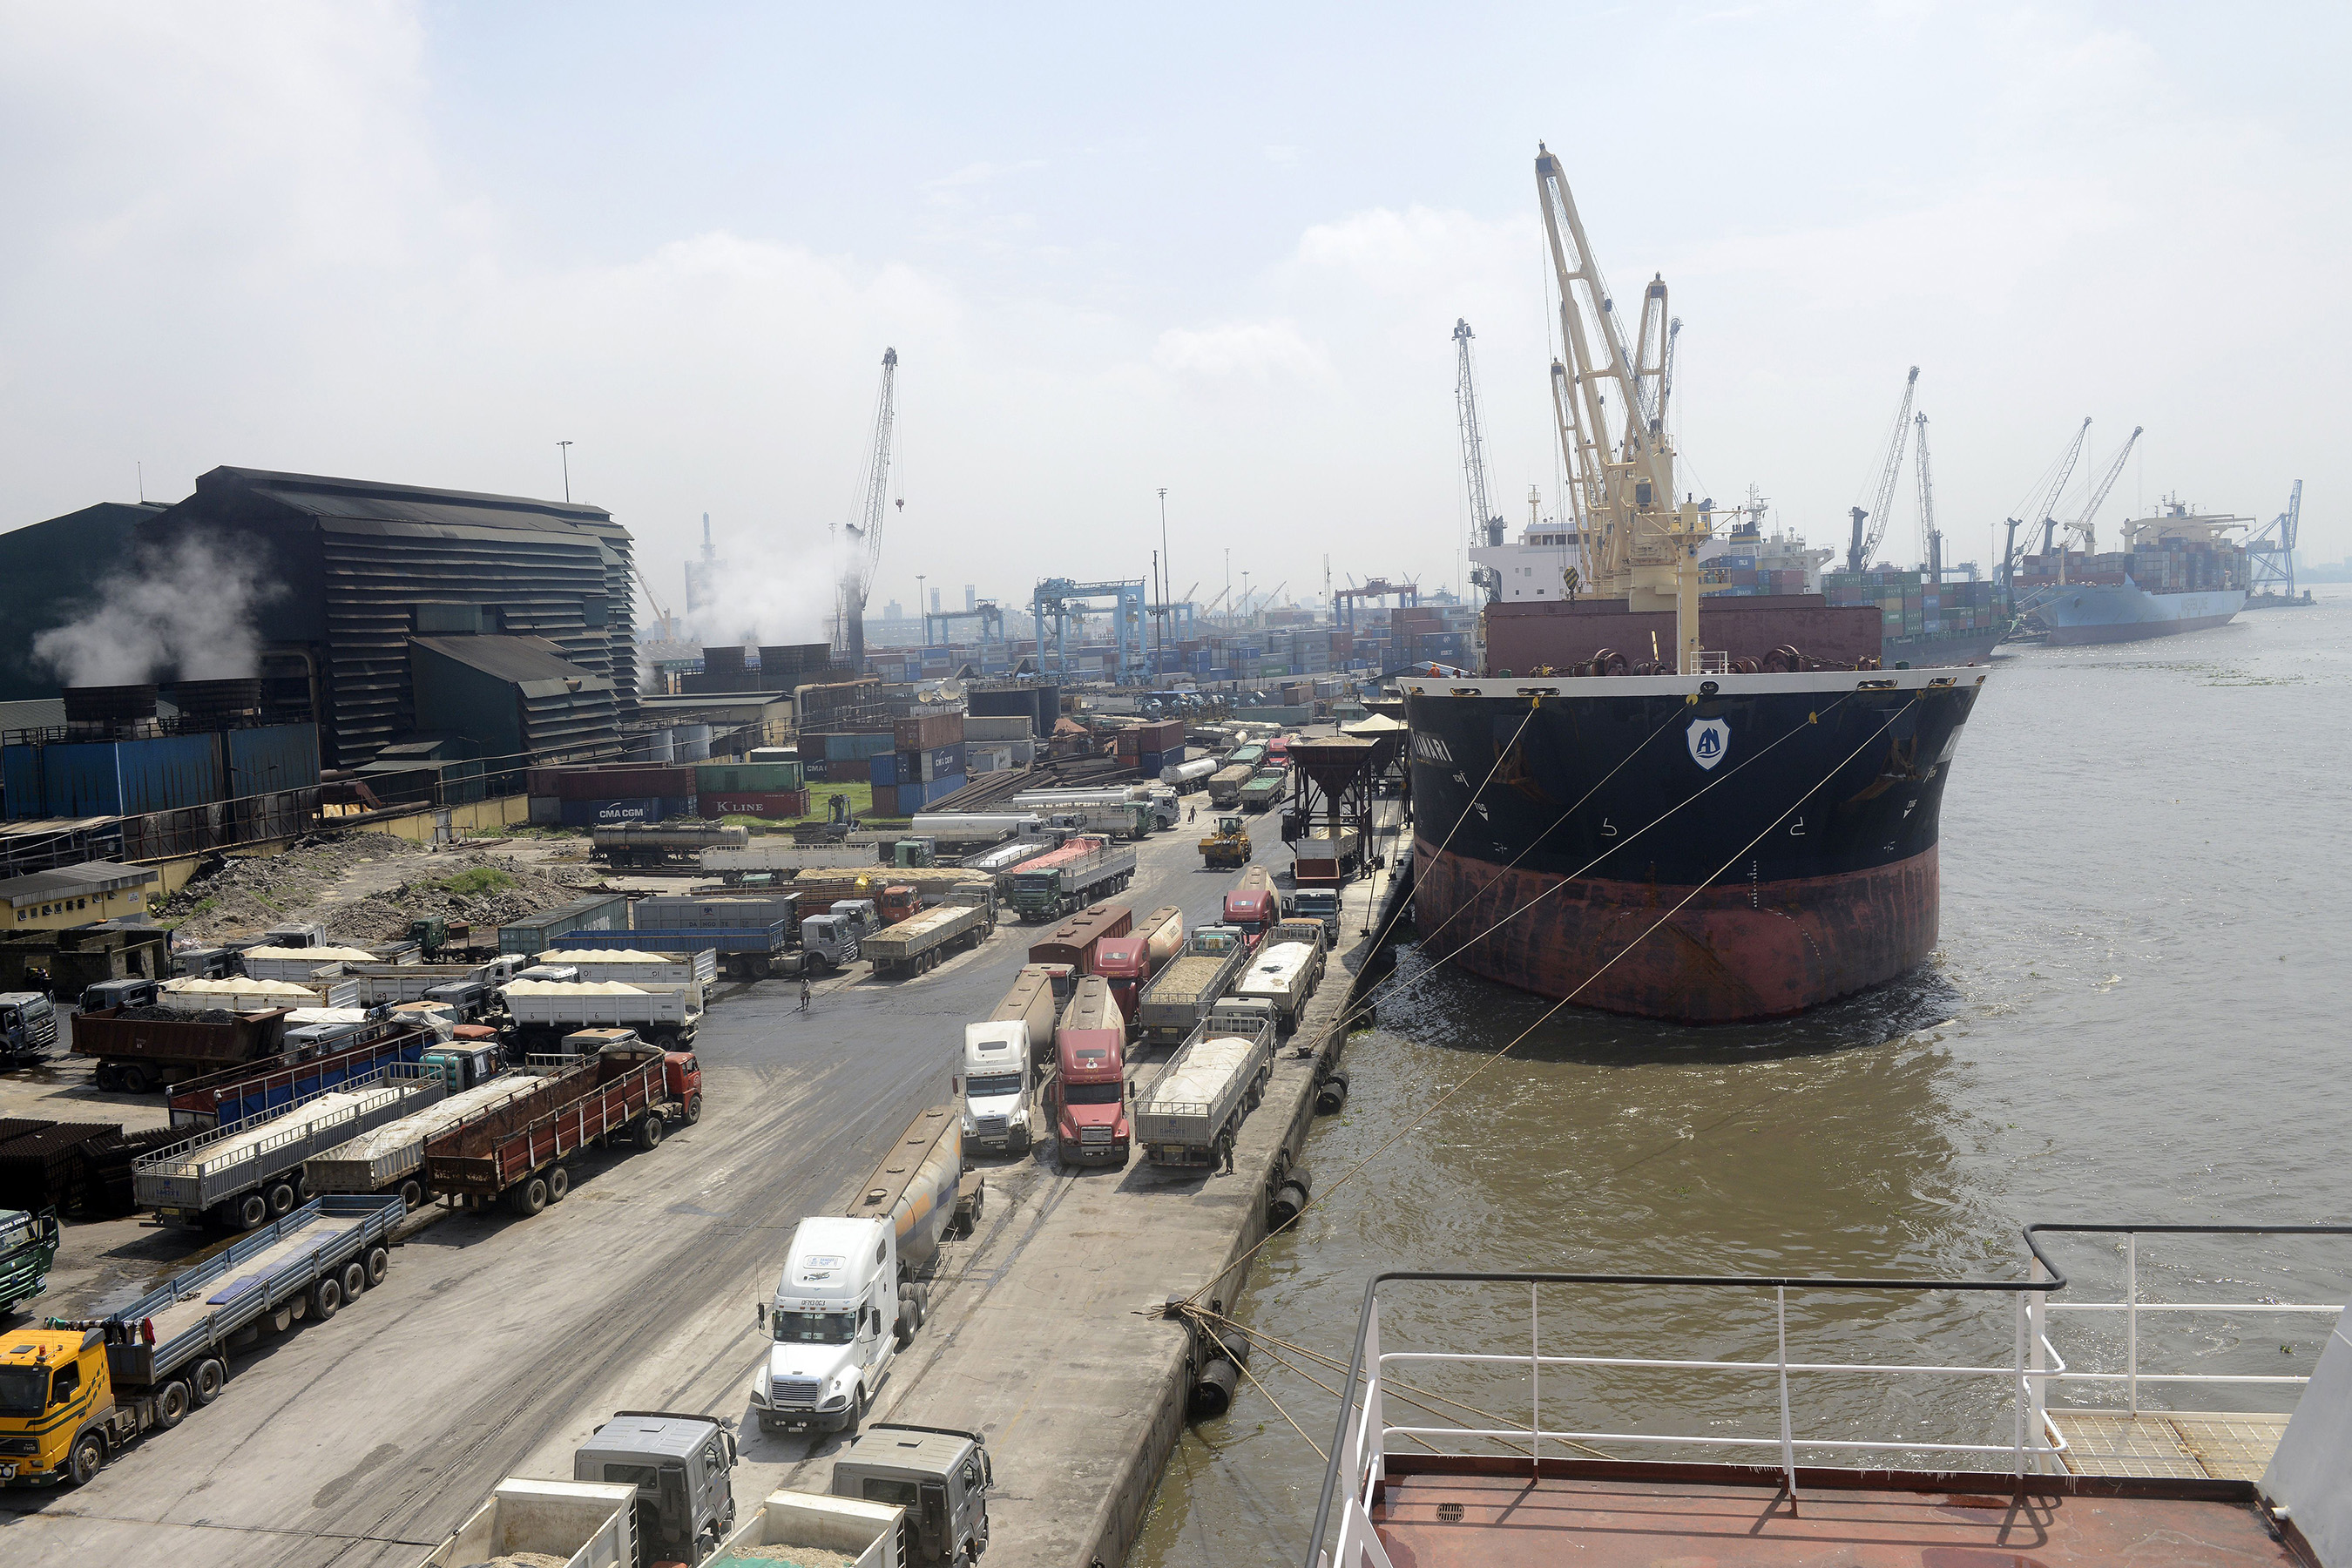 Cargo ships are docked at the Apapa Sea Port in Lagos.